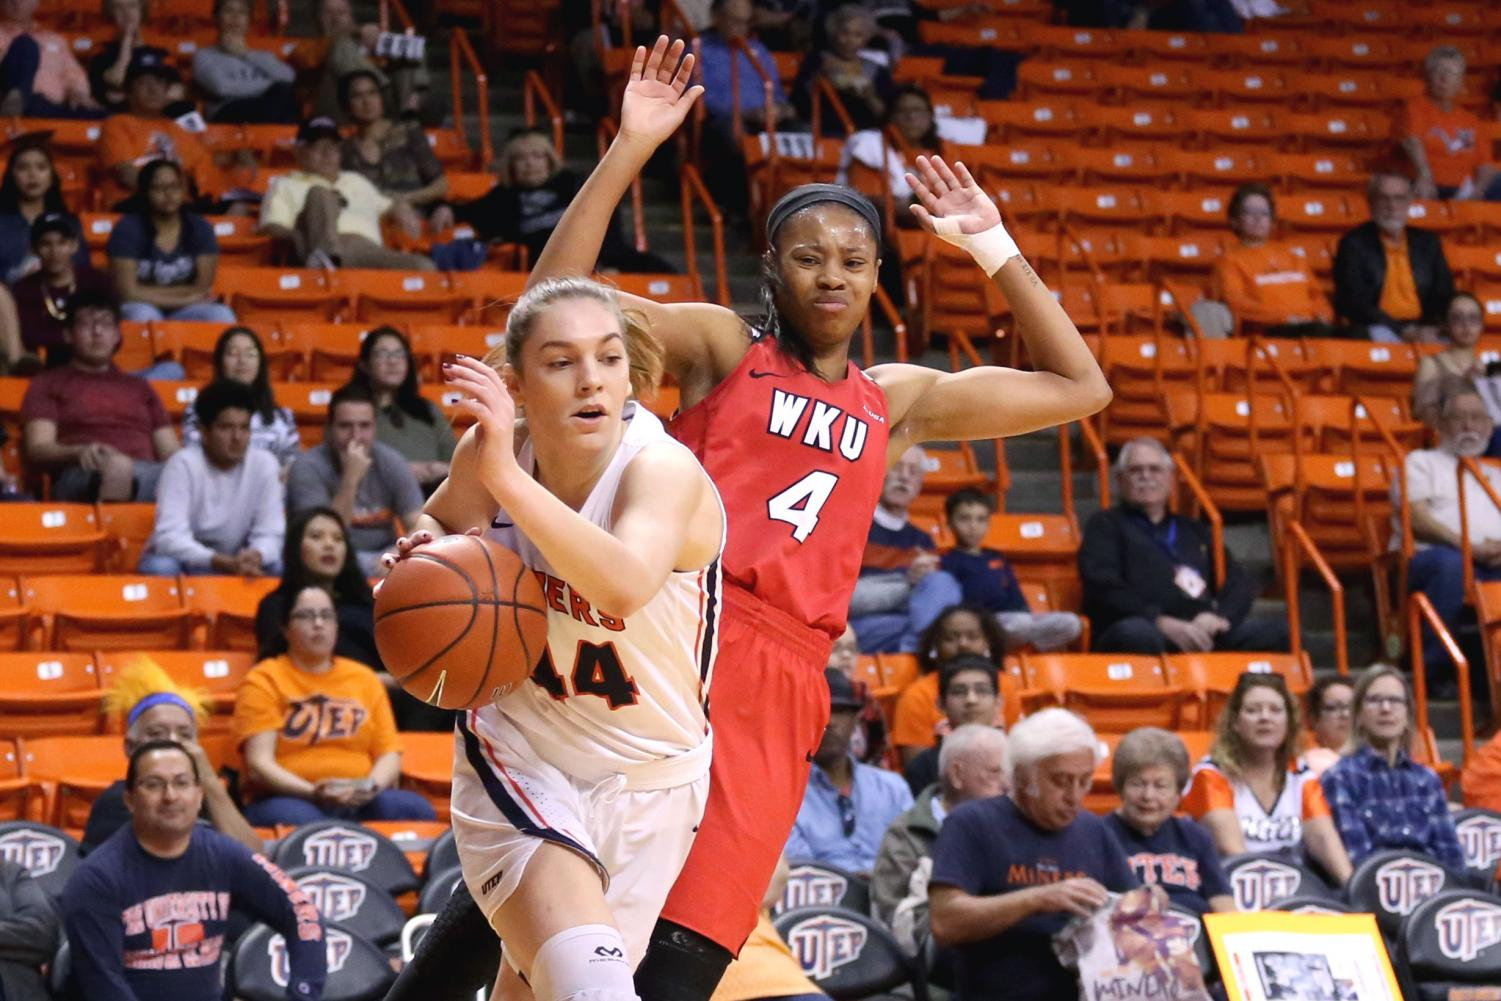 Sophomore+guard+Katarina+Zec+passes+by+the+defender+on+Saturday%2C+March+3+at+the+Don+Haskins+Center.